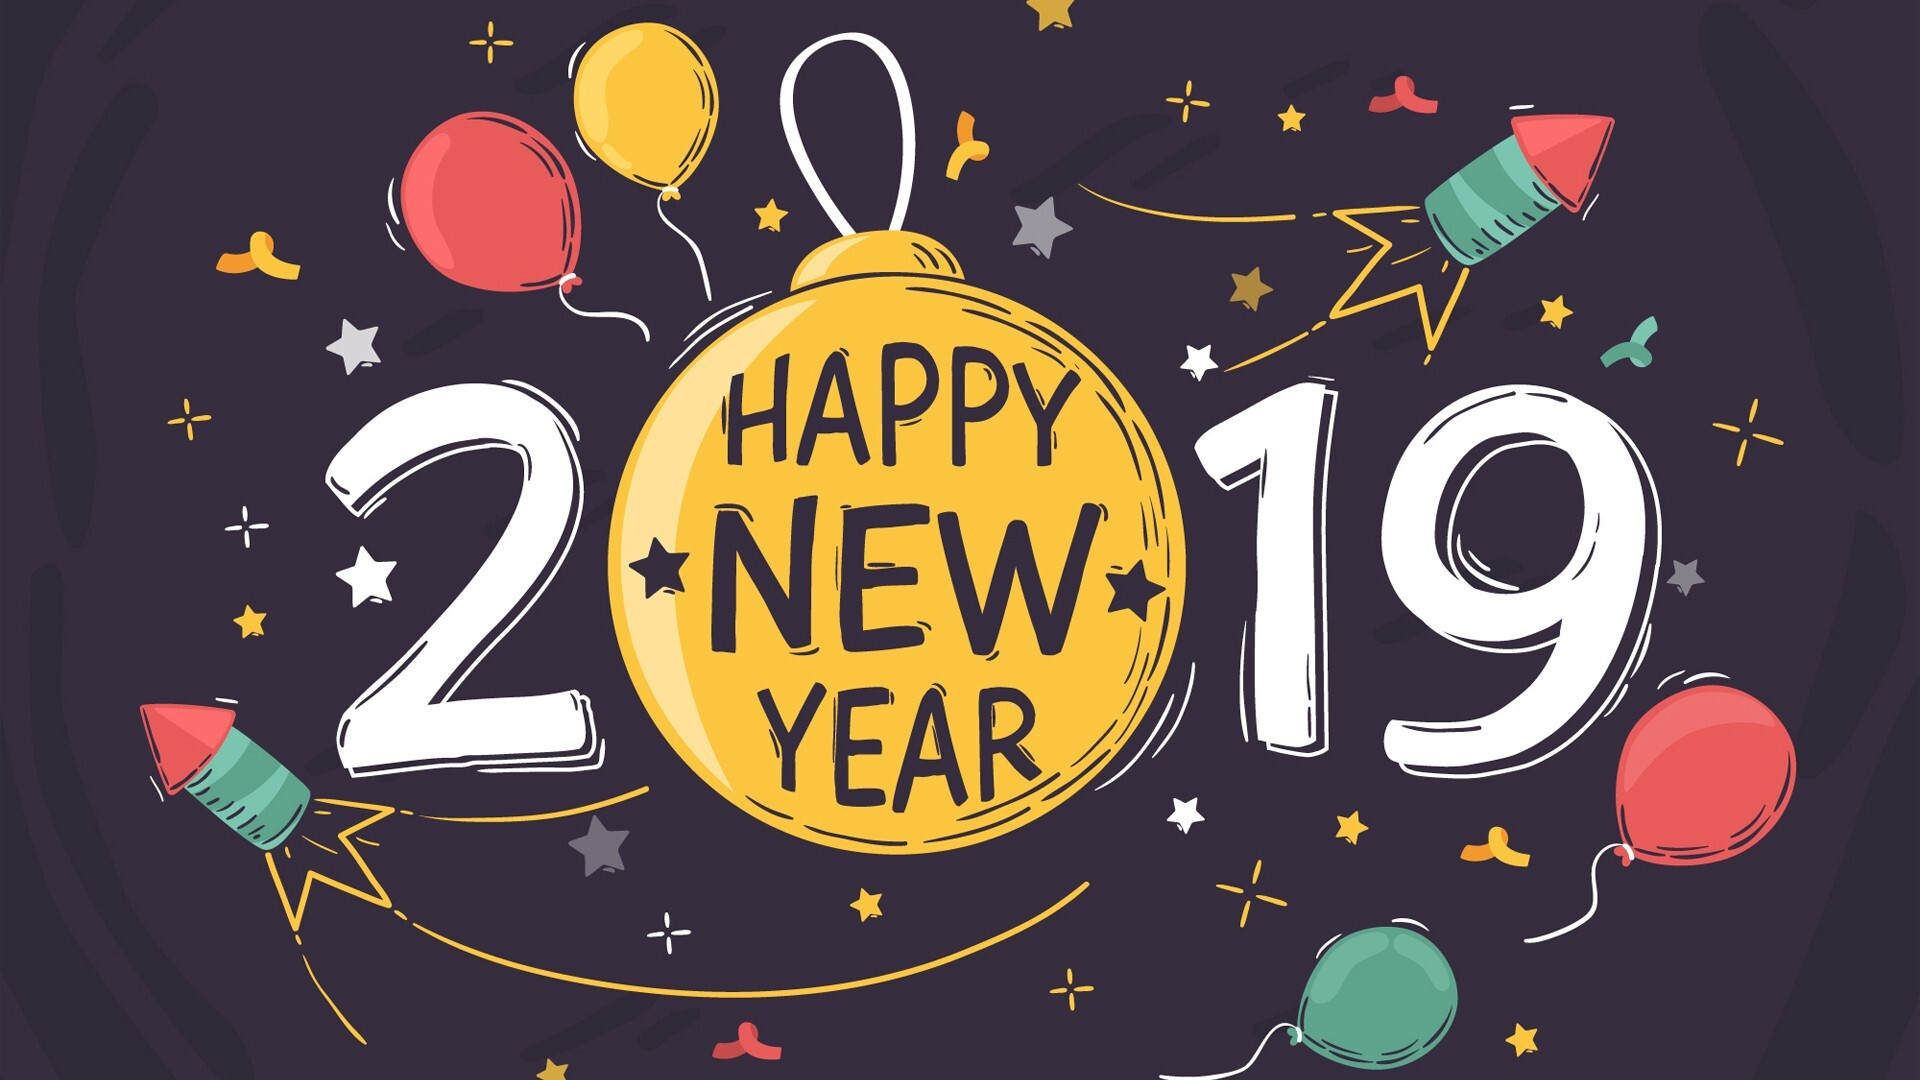 New Year 2019 HD Images | HD Wallpapers